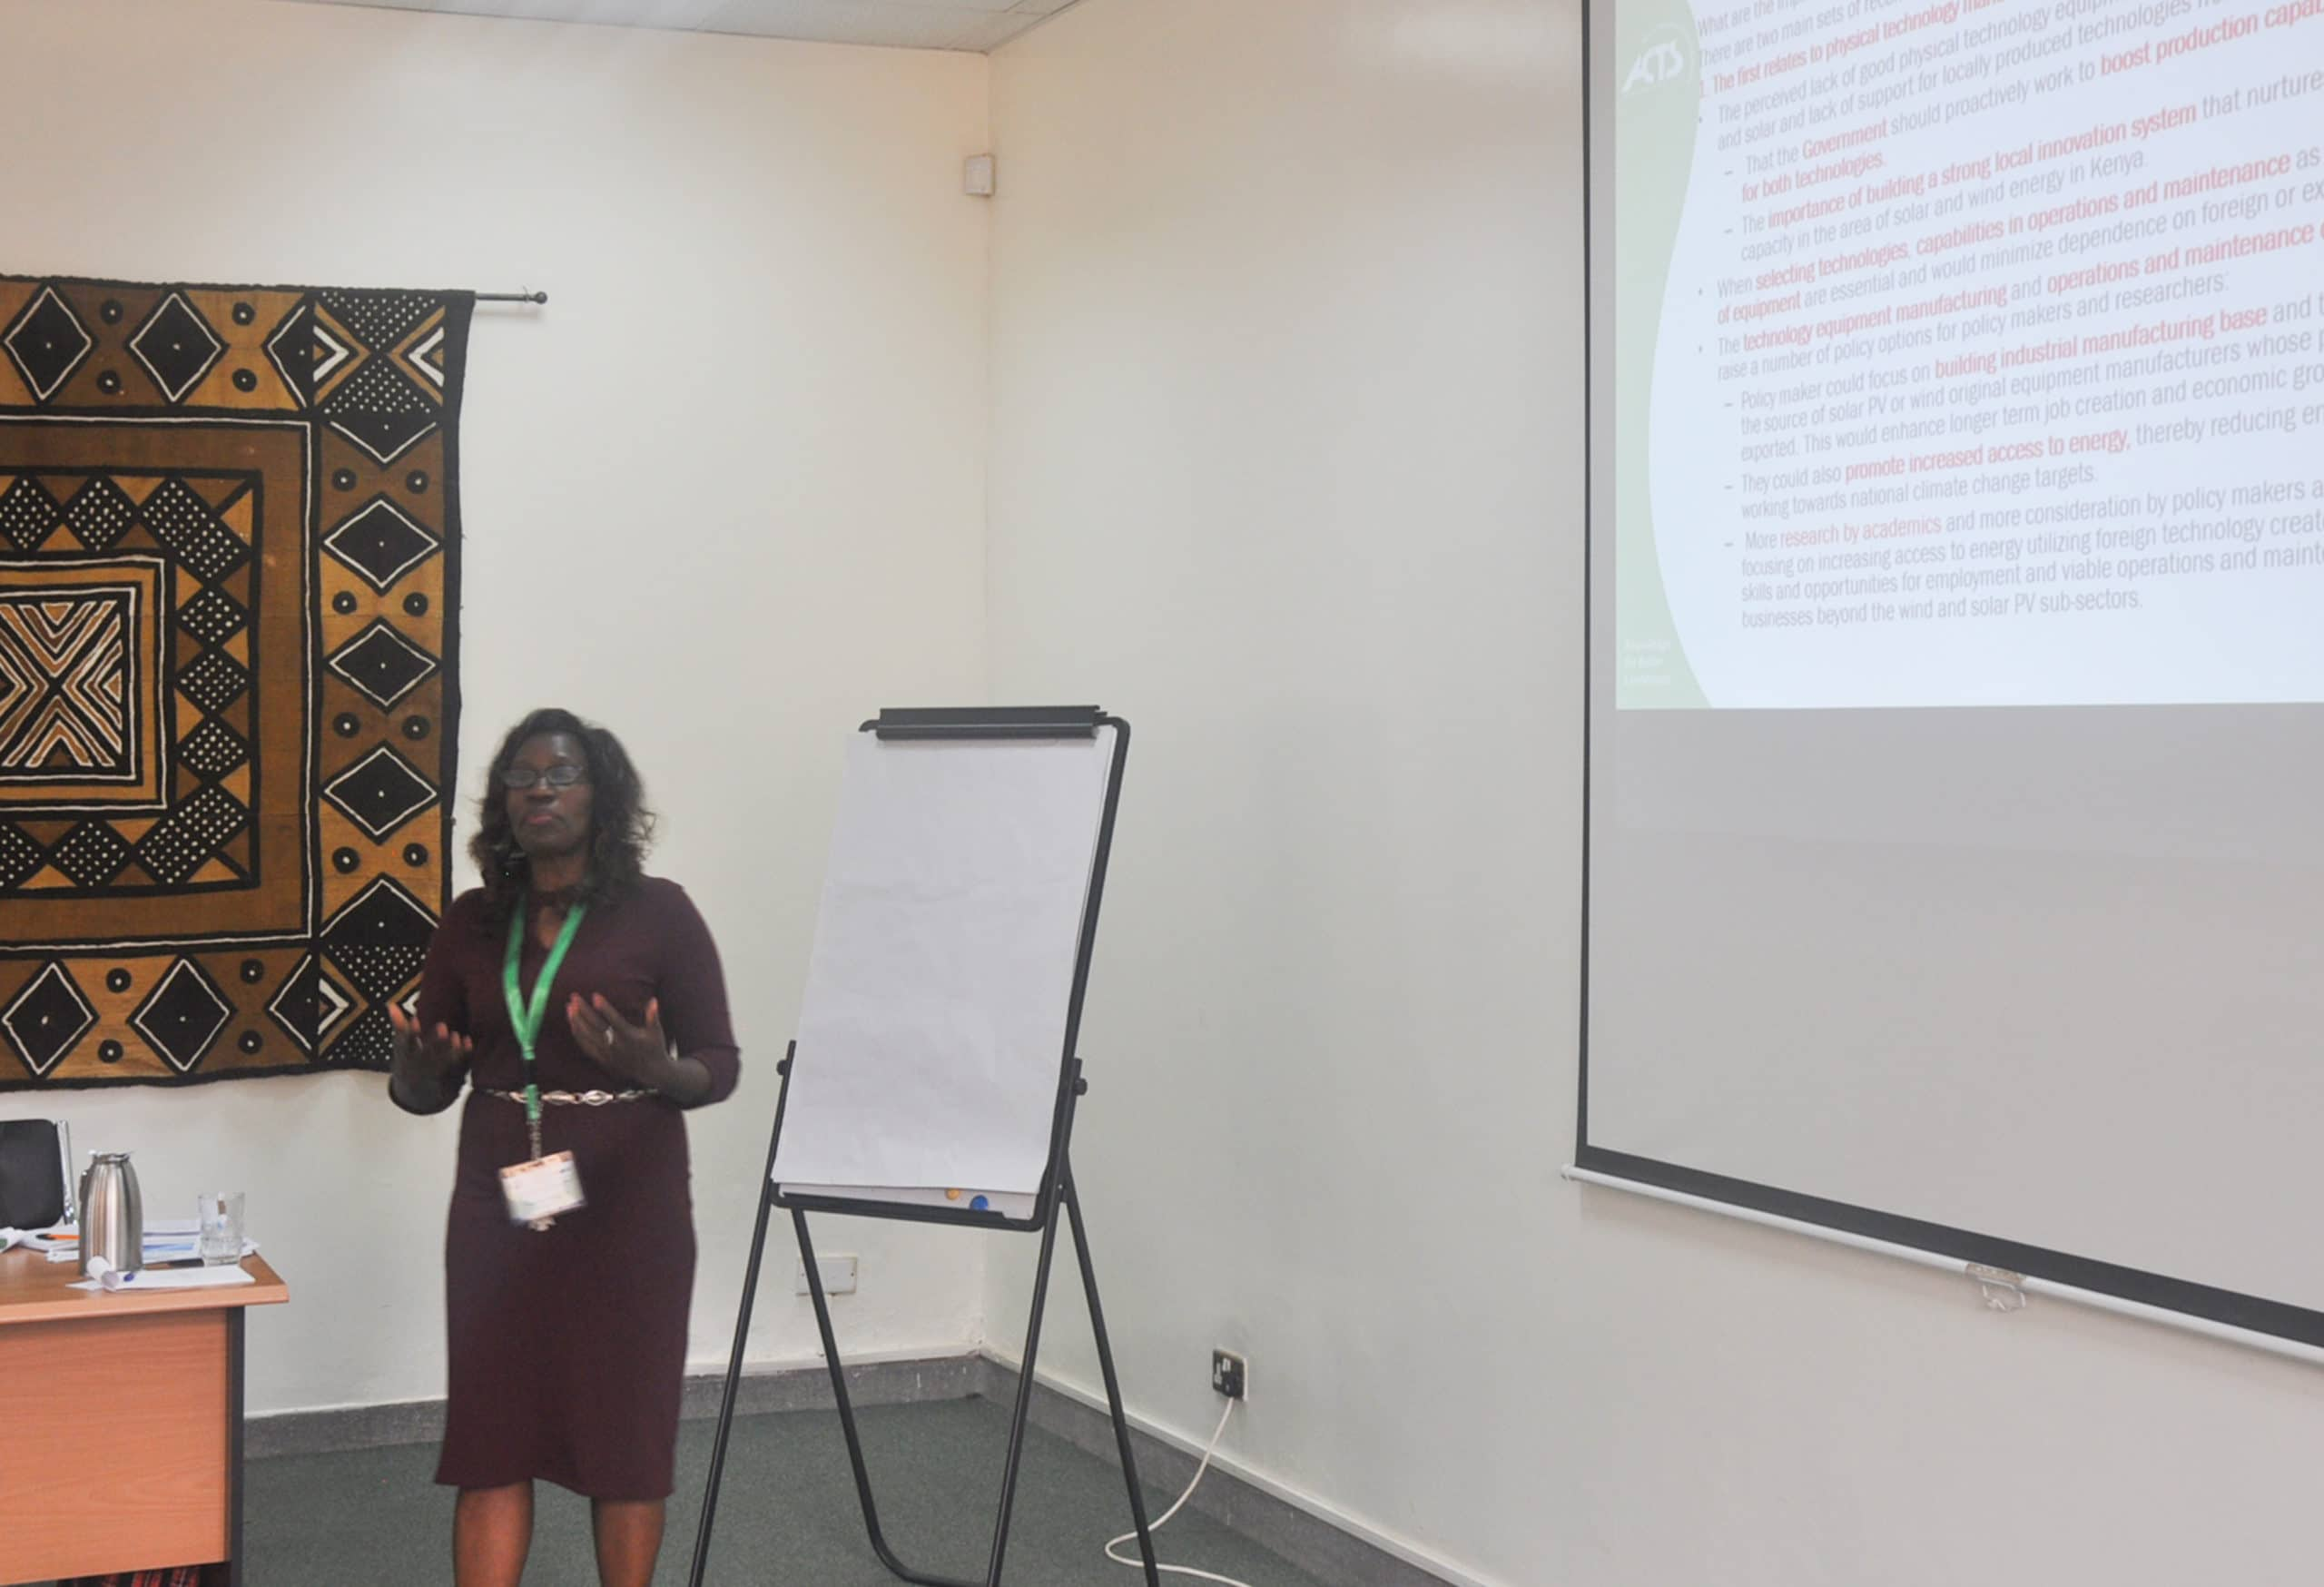 IREK researcher sharing IREK research findings with stakeholders during IREK stakeholders' workshop on 28 March 2018